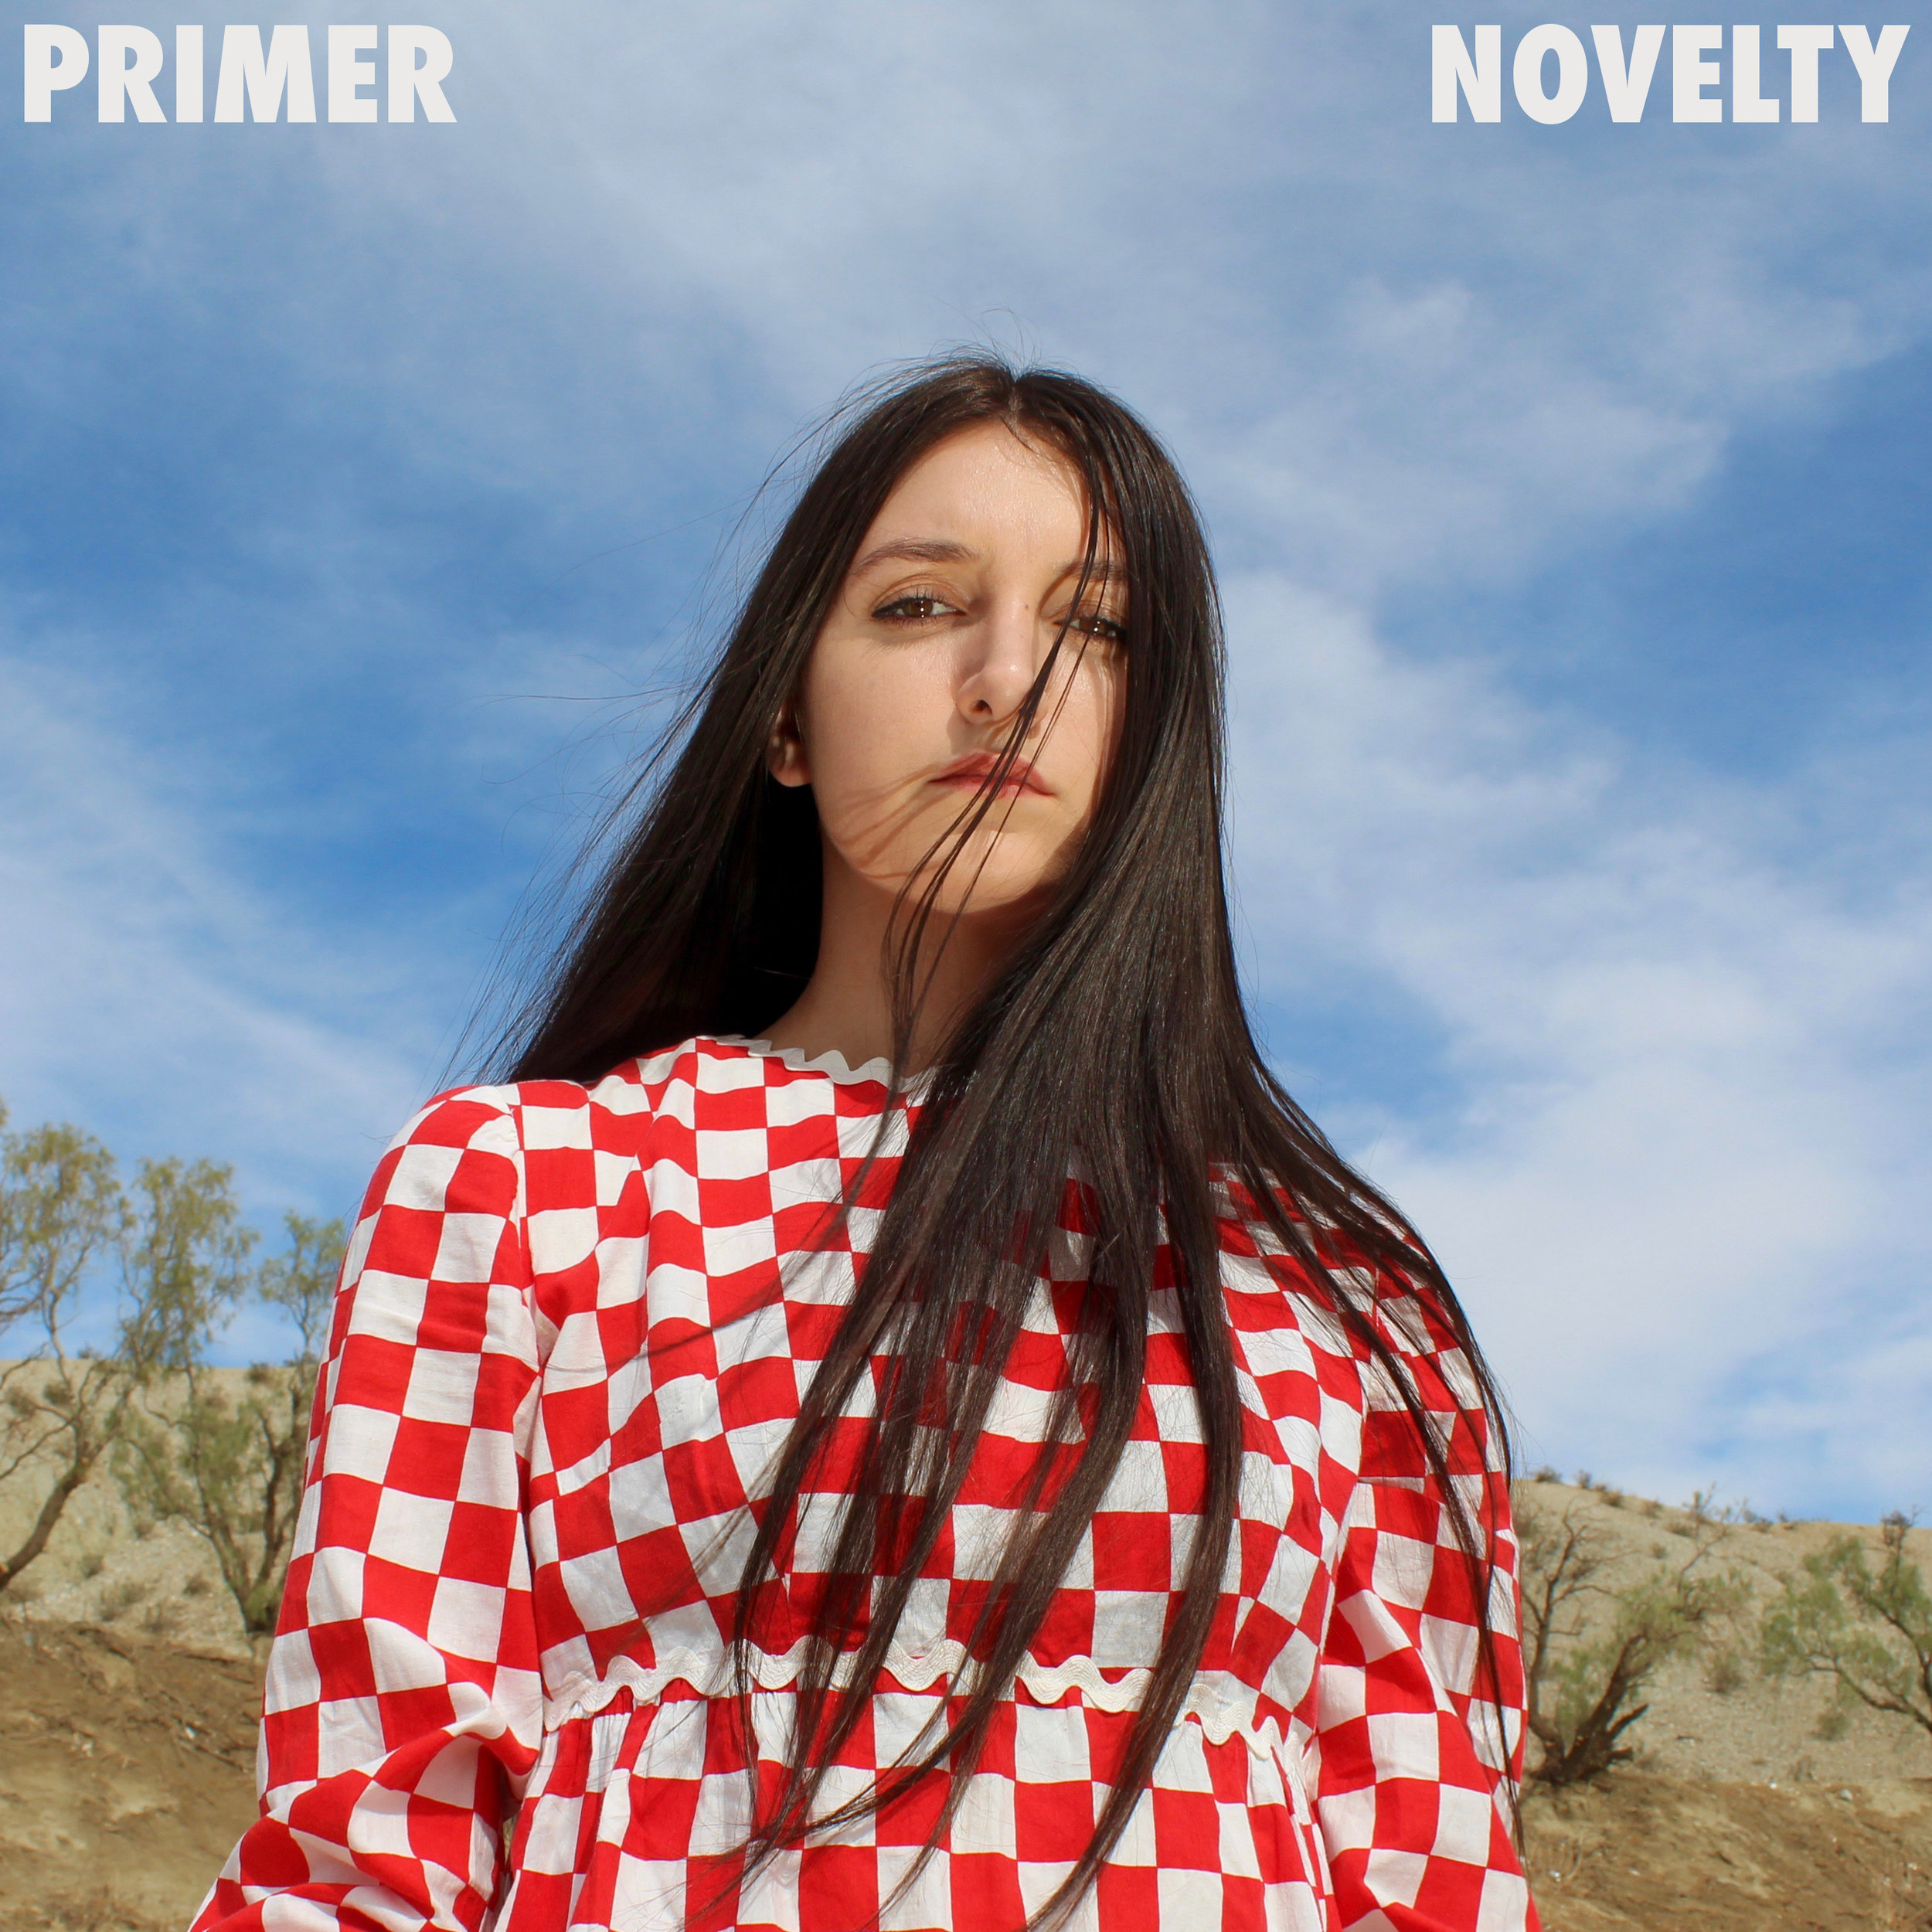 Novelty - Pre-order Primer's debut album Novelty, and get a free download of the two singles Anesthetized and A Broken Person's Game.The album releases everywhere digitally on March 1st, 2019.